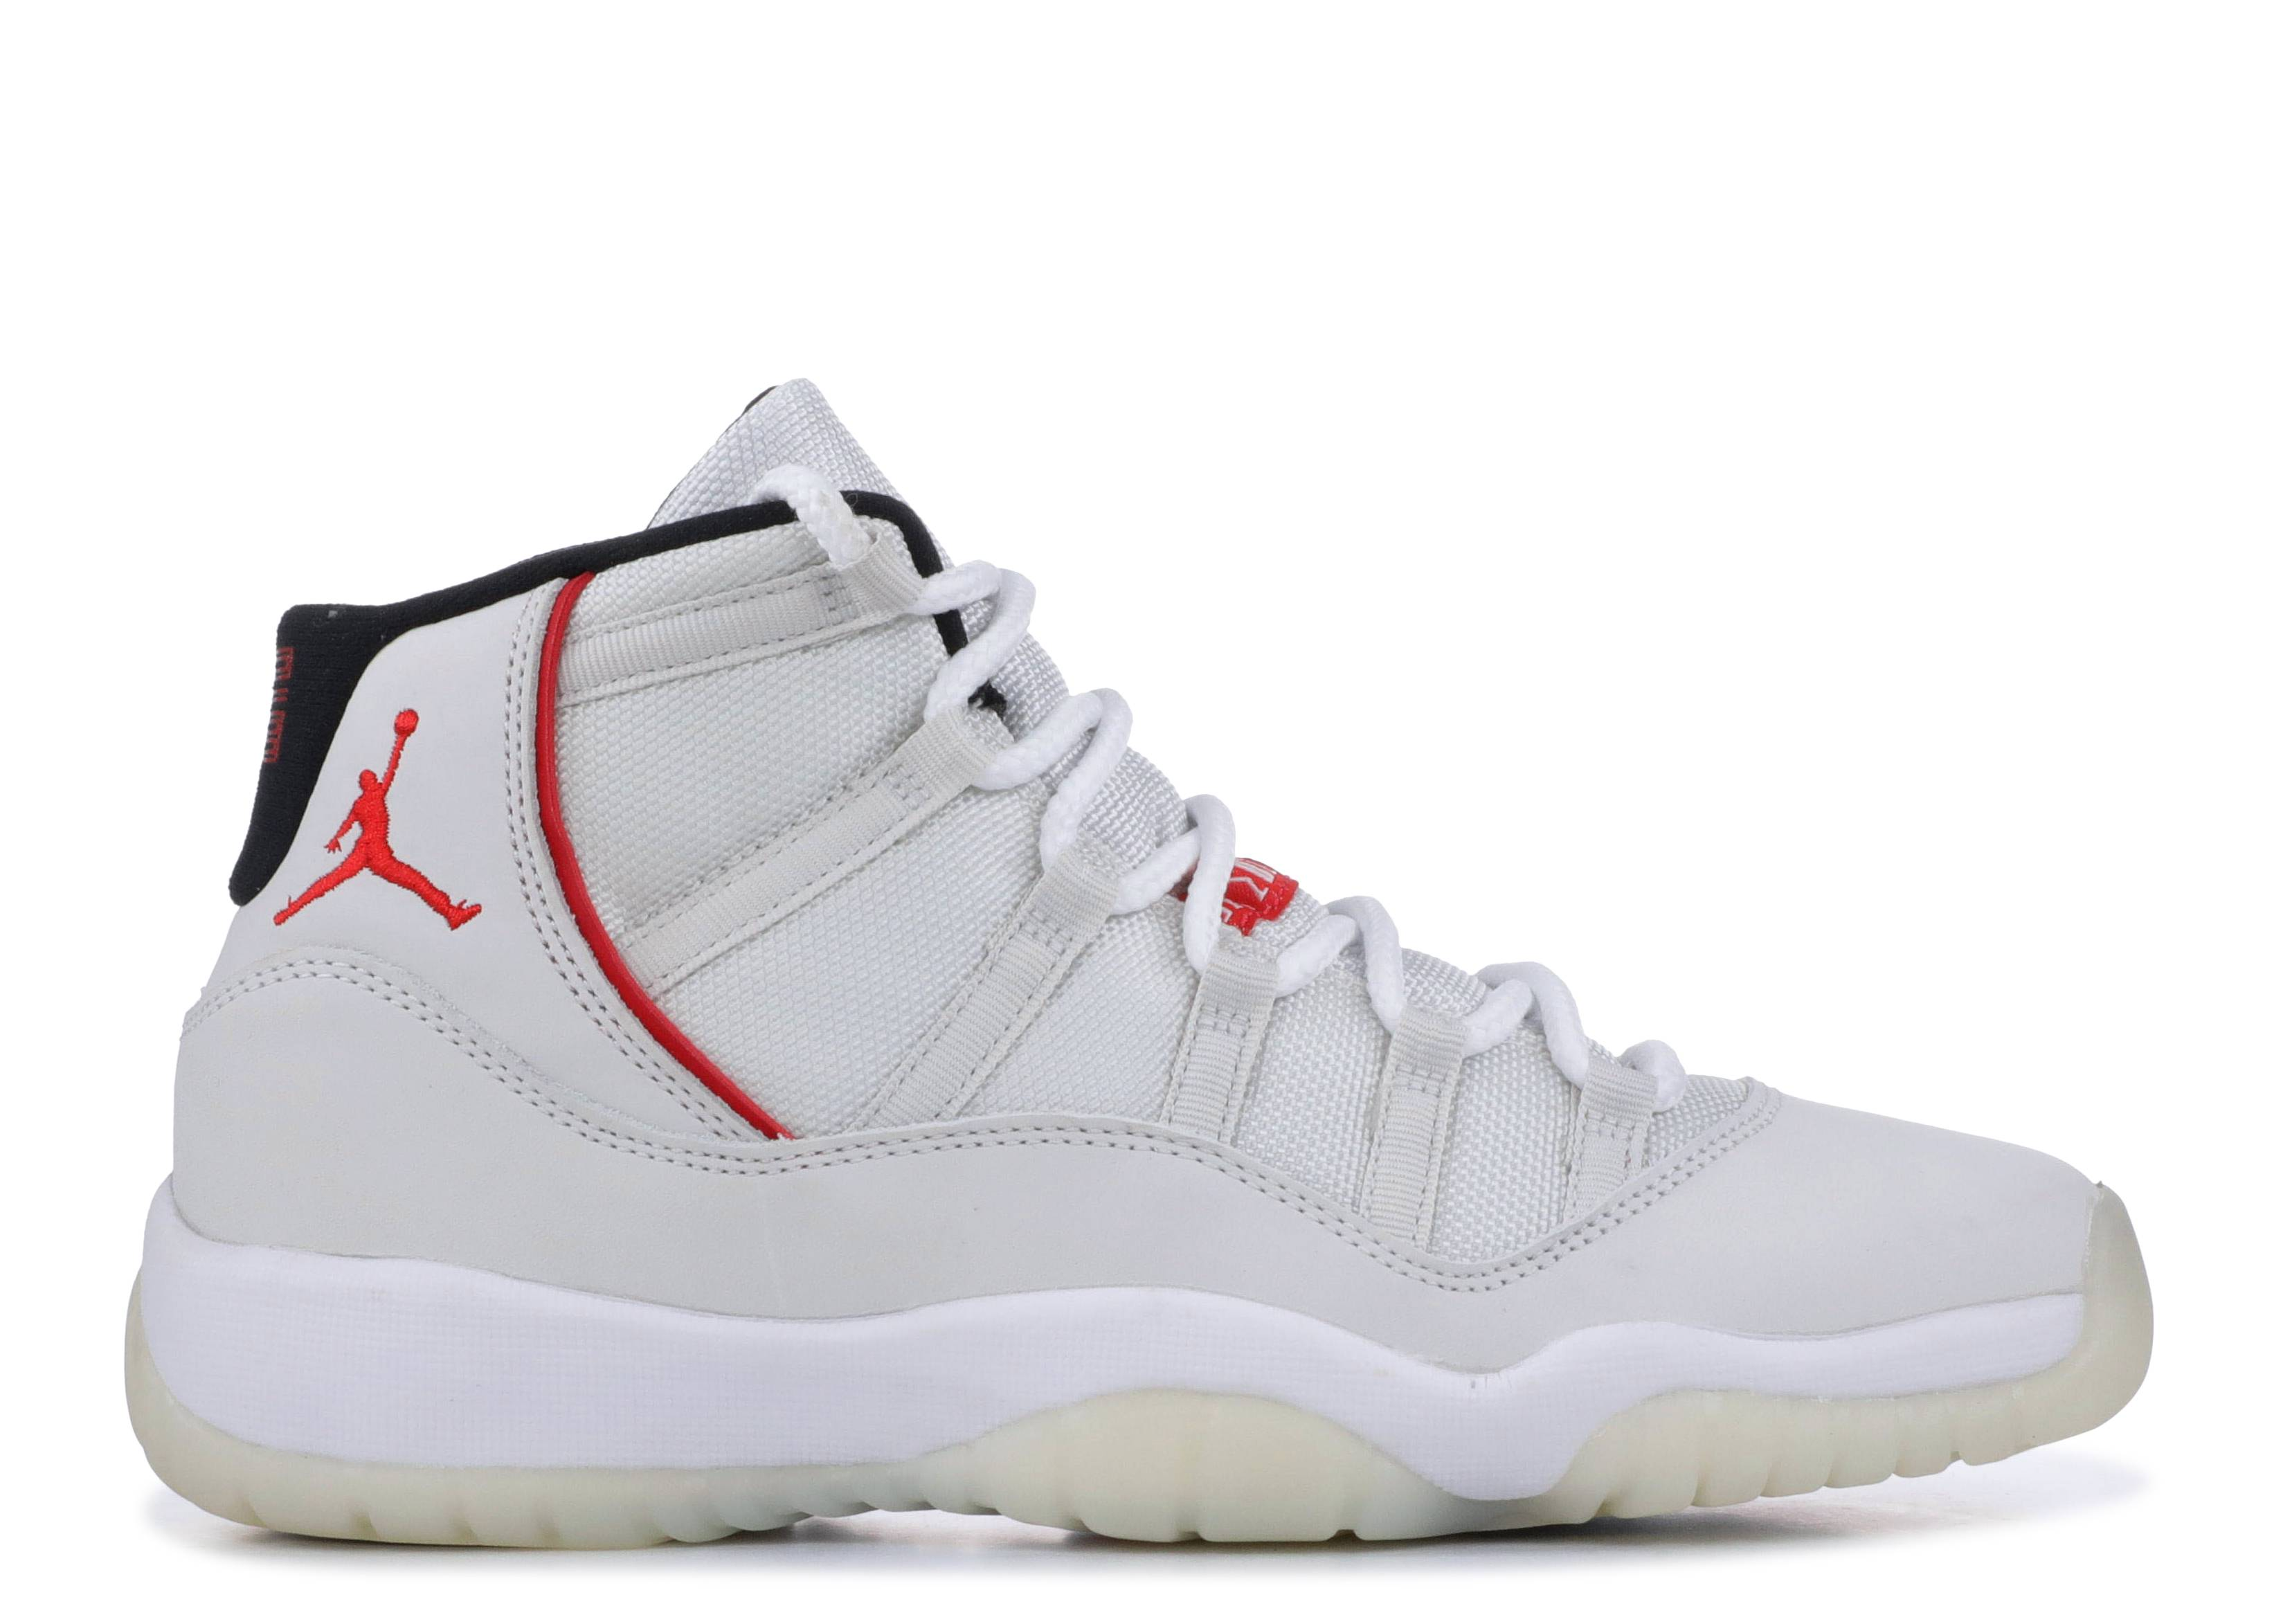 online retailer c1034 f4a63 Air Jordan 11 (XI) Shoes - Nike   Flight Club